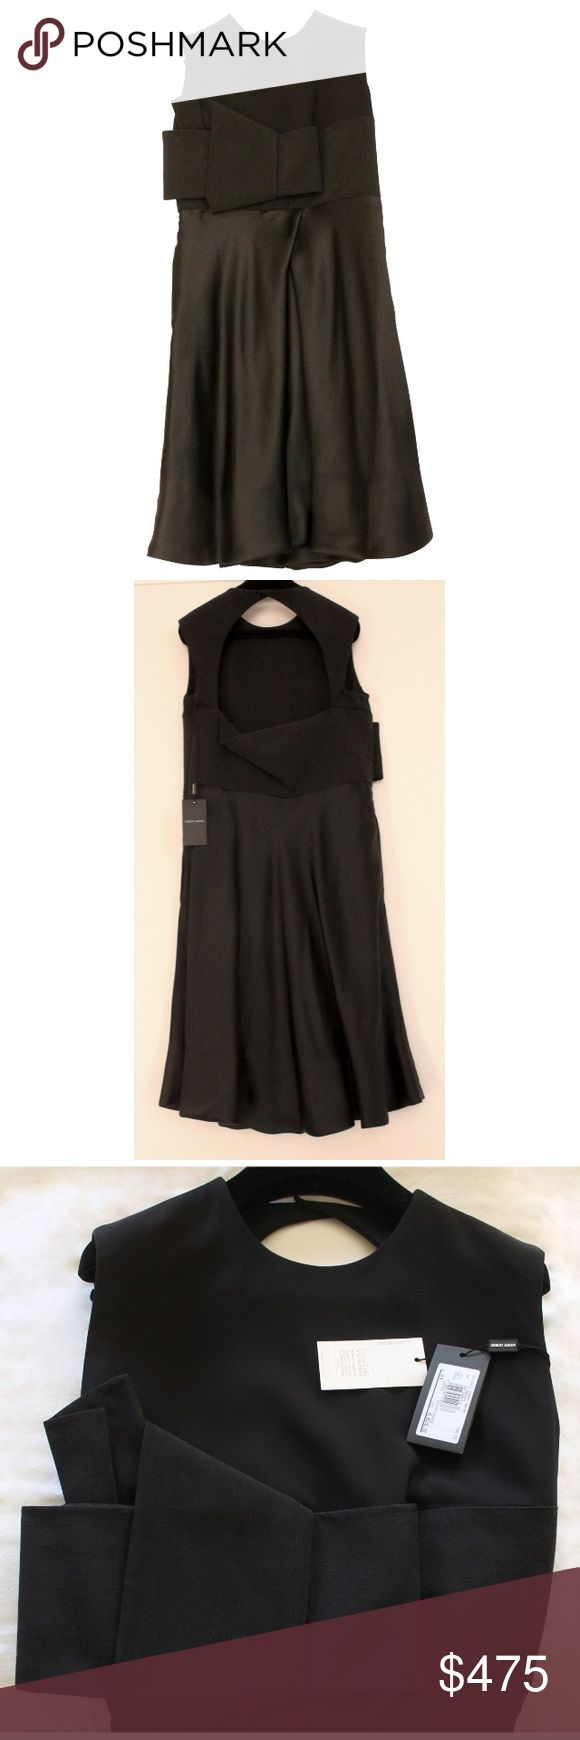 Armani dress new 100% pure silk Oriental look new Armani dress pure silk black Giorgio Armani Dresses Midi